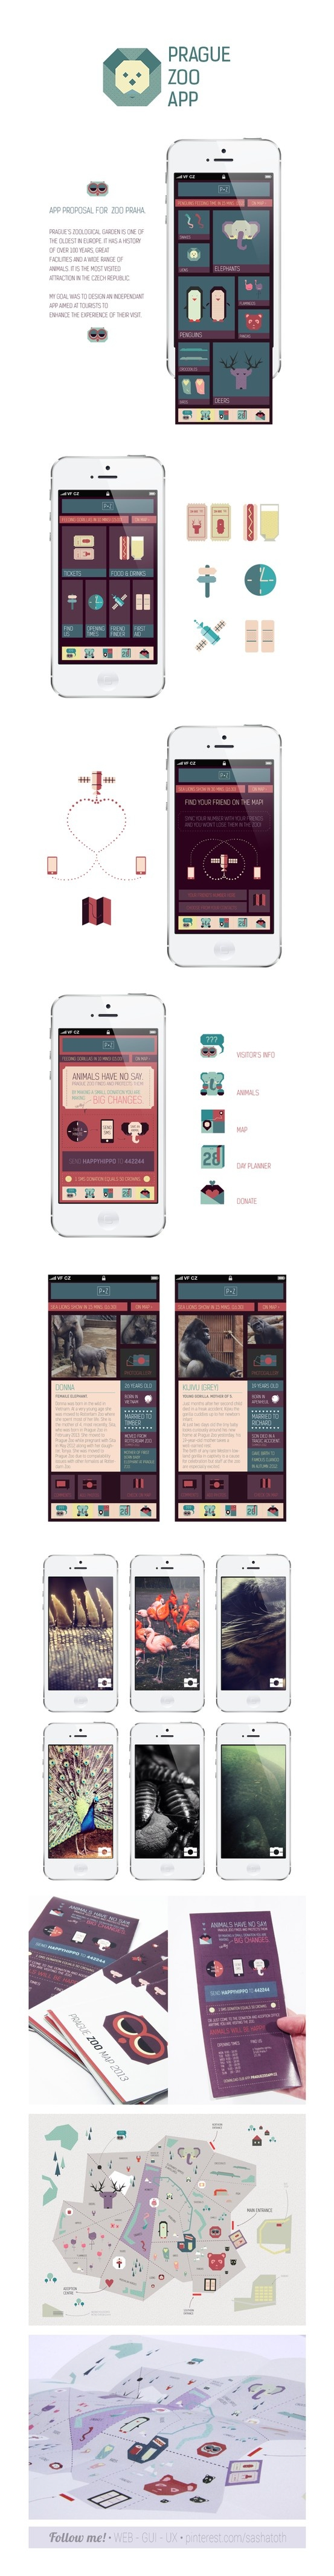 Excellent work - Prague Zoo application concept | Designer: Alina Kotova #iphone #app #gui #ios